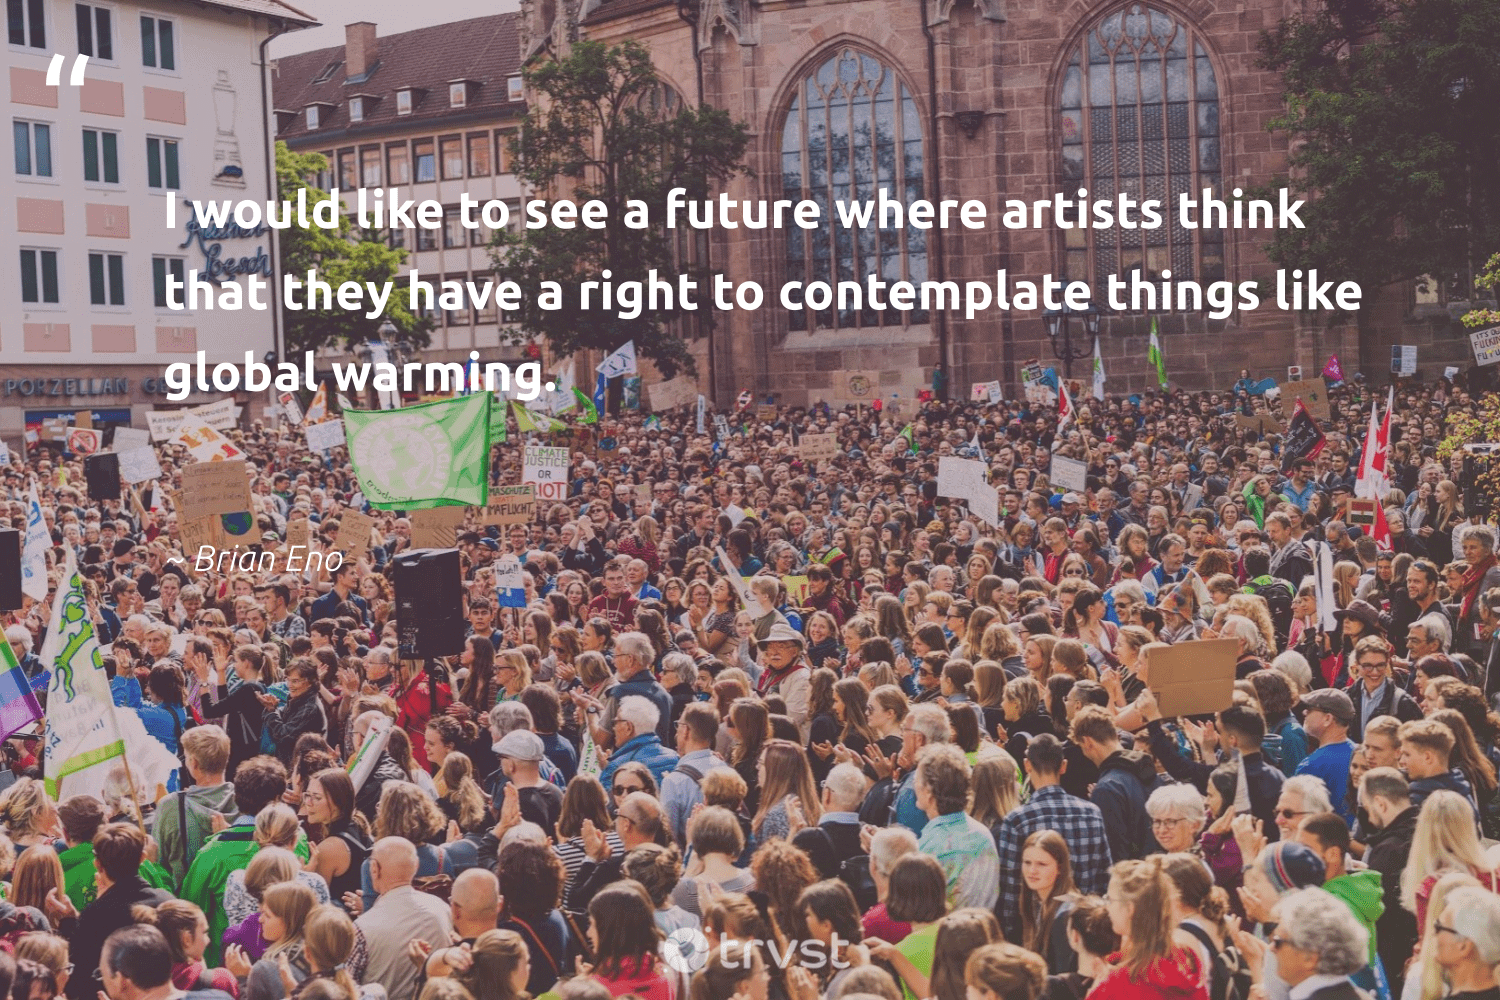 """""""I would like to see a future where artists think that they have a right to contemplate things like global warming.""""  - Brian Eno #trvst #quotes #climatechange #globalwarming #climate #climatefight #ecoconscious #impact #climateaction #climatechangeisreal #sustainablefutures #beinspired"""